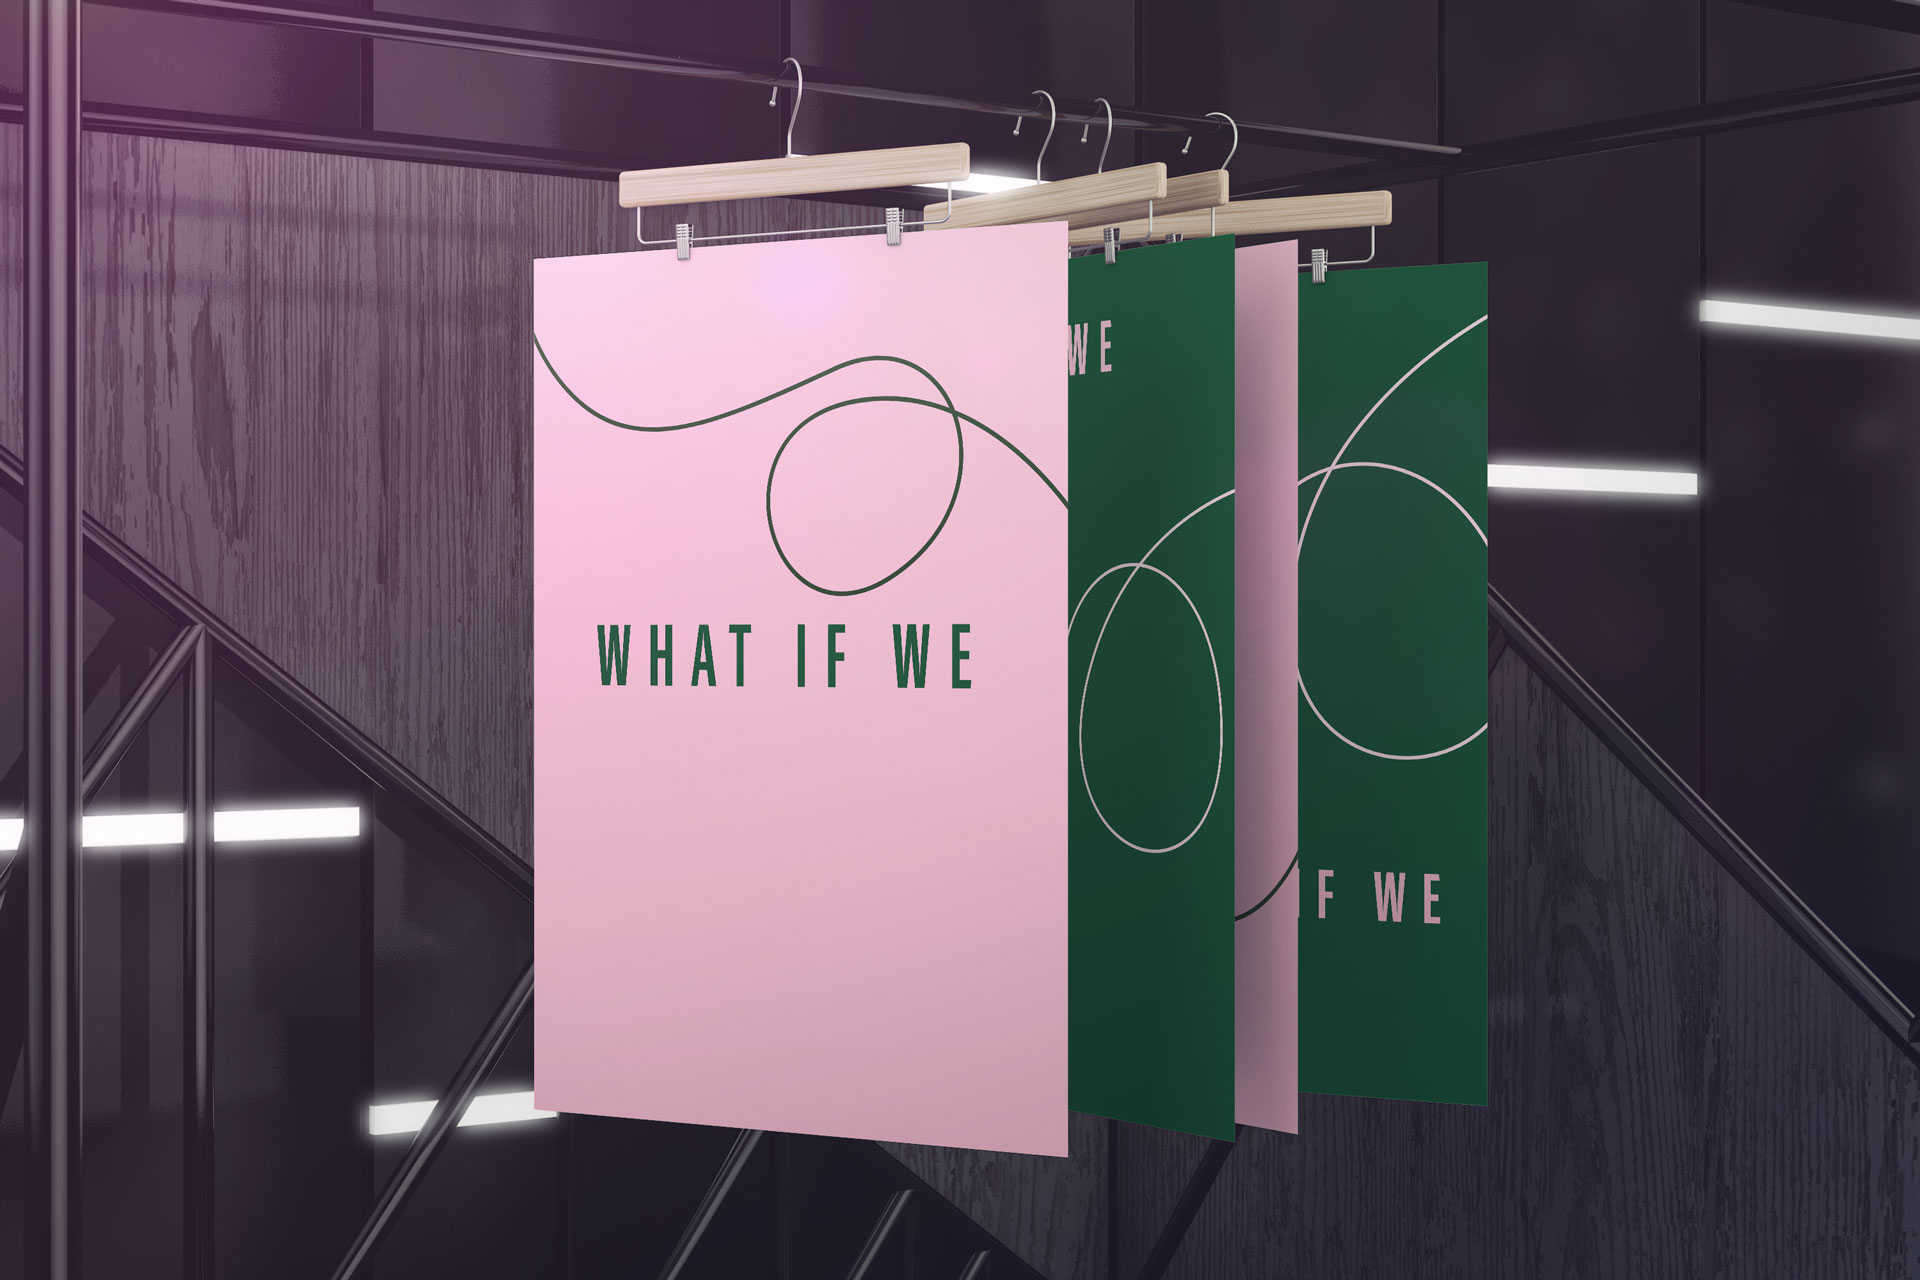 messe-stand-what-if-we